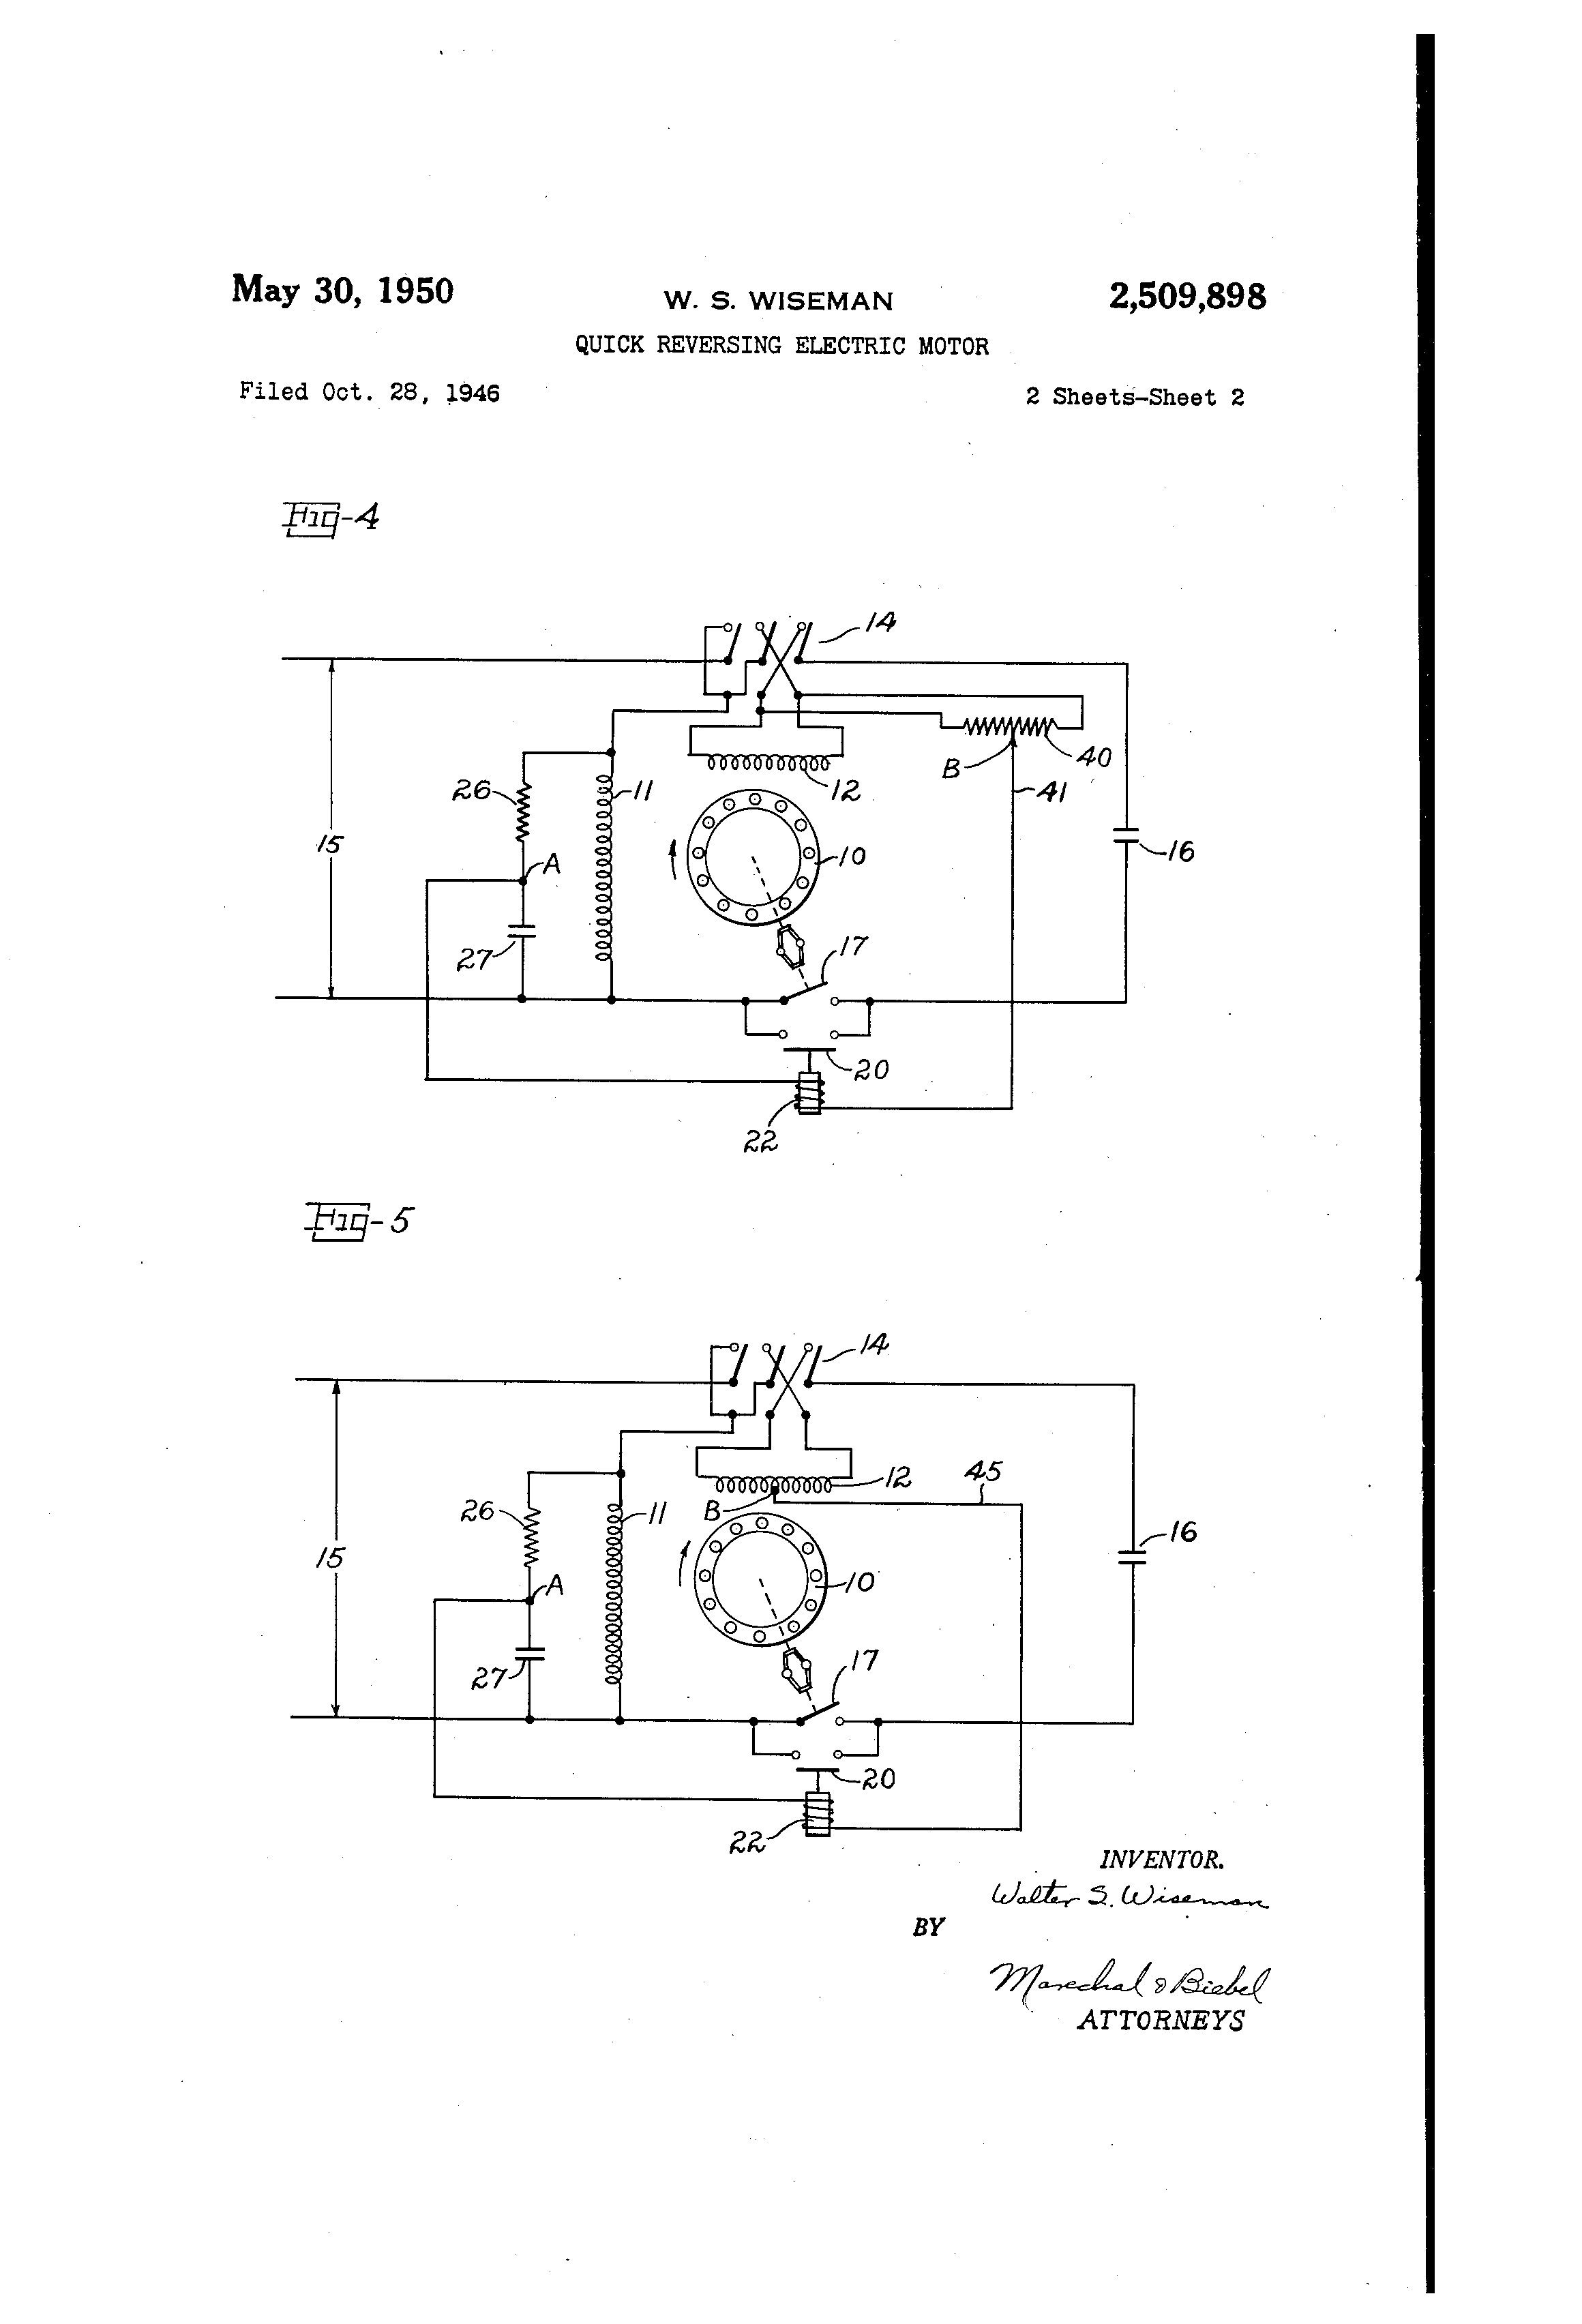 Dorable Electrical 3 Phase Wiring Diagrams Ornament - Best Images ...